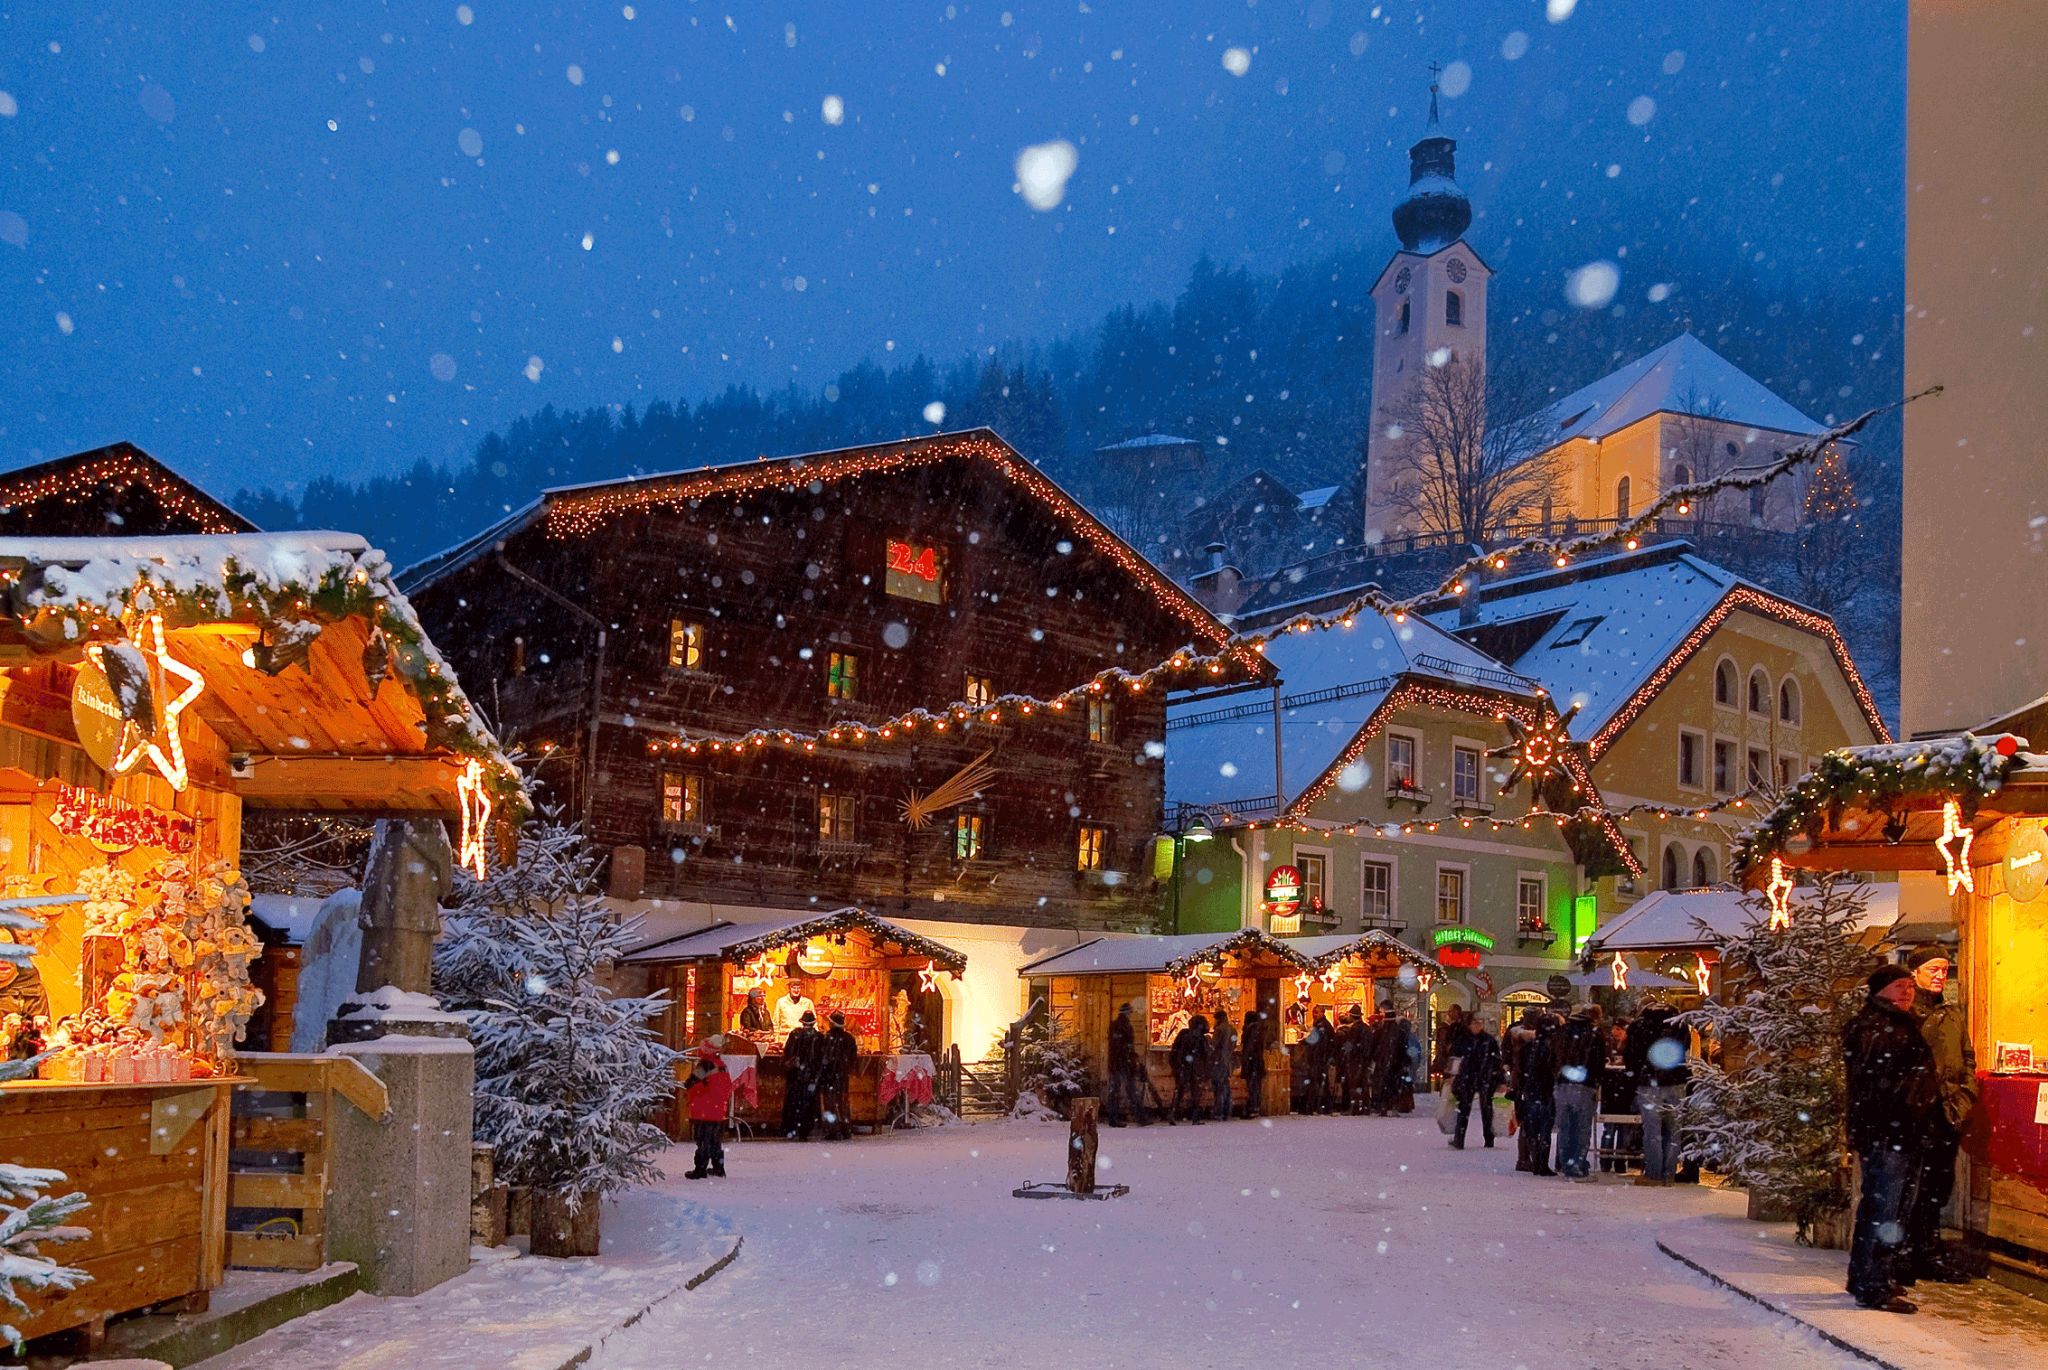 Advent, Advent – der Ski, der rennt!